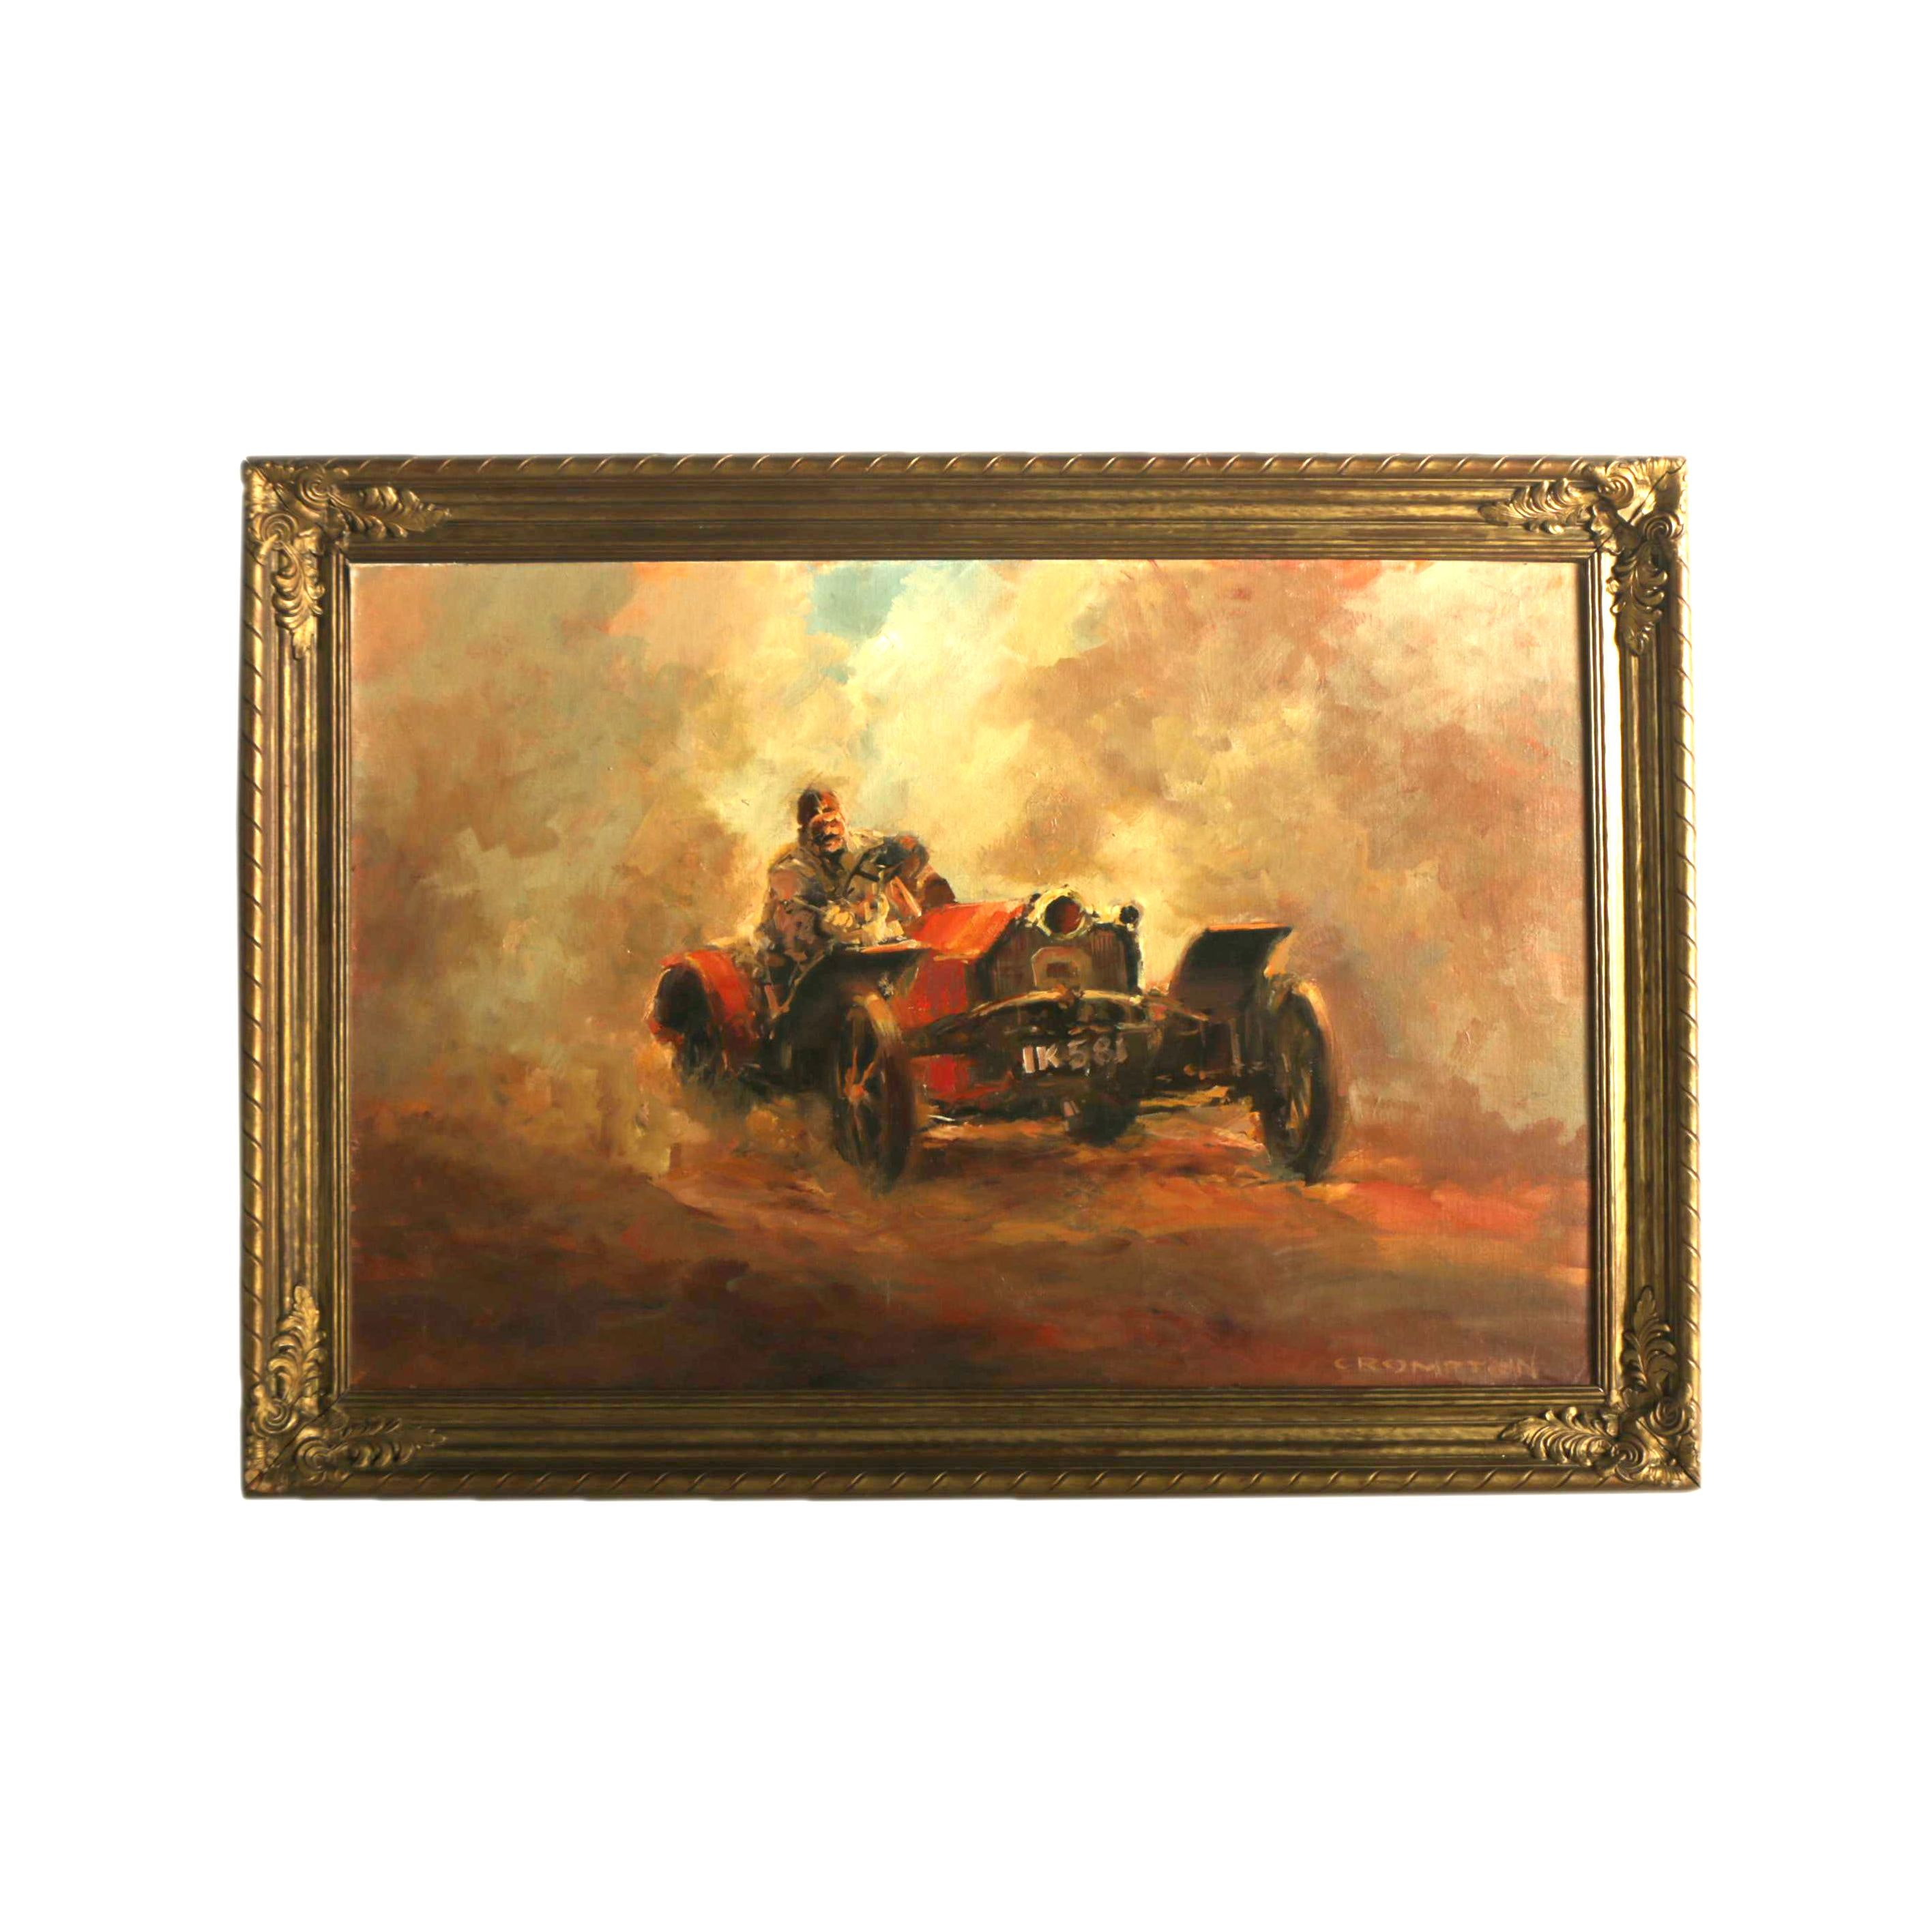 Jim Crompton Oil Painting on Canvas Board of Auto Racer